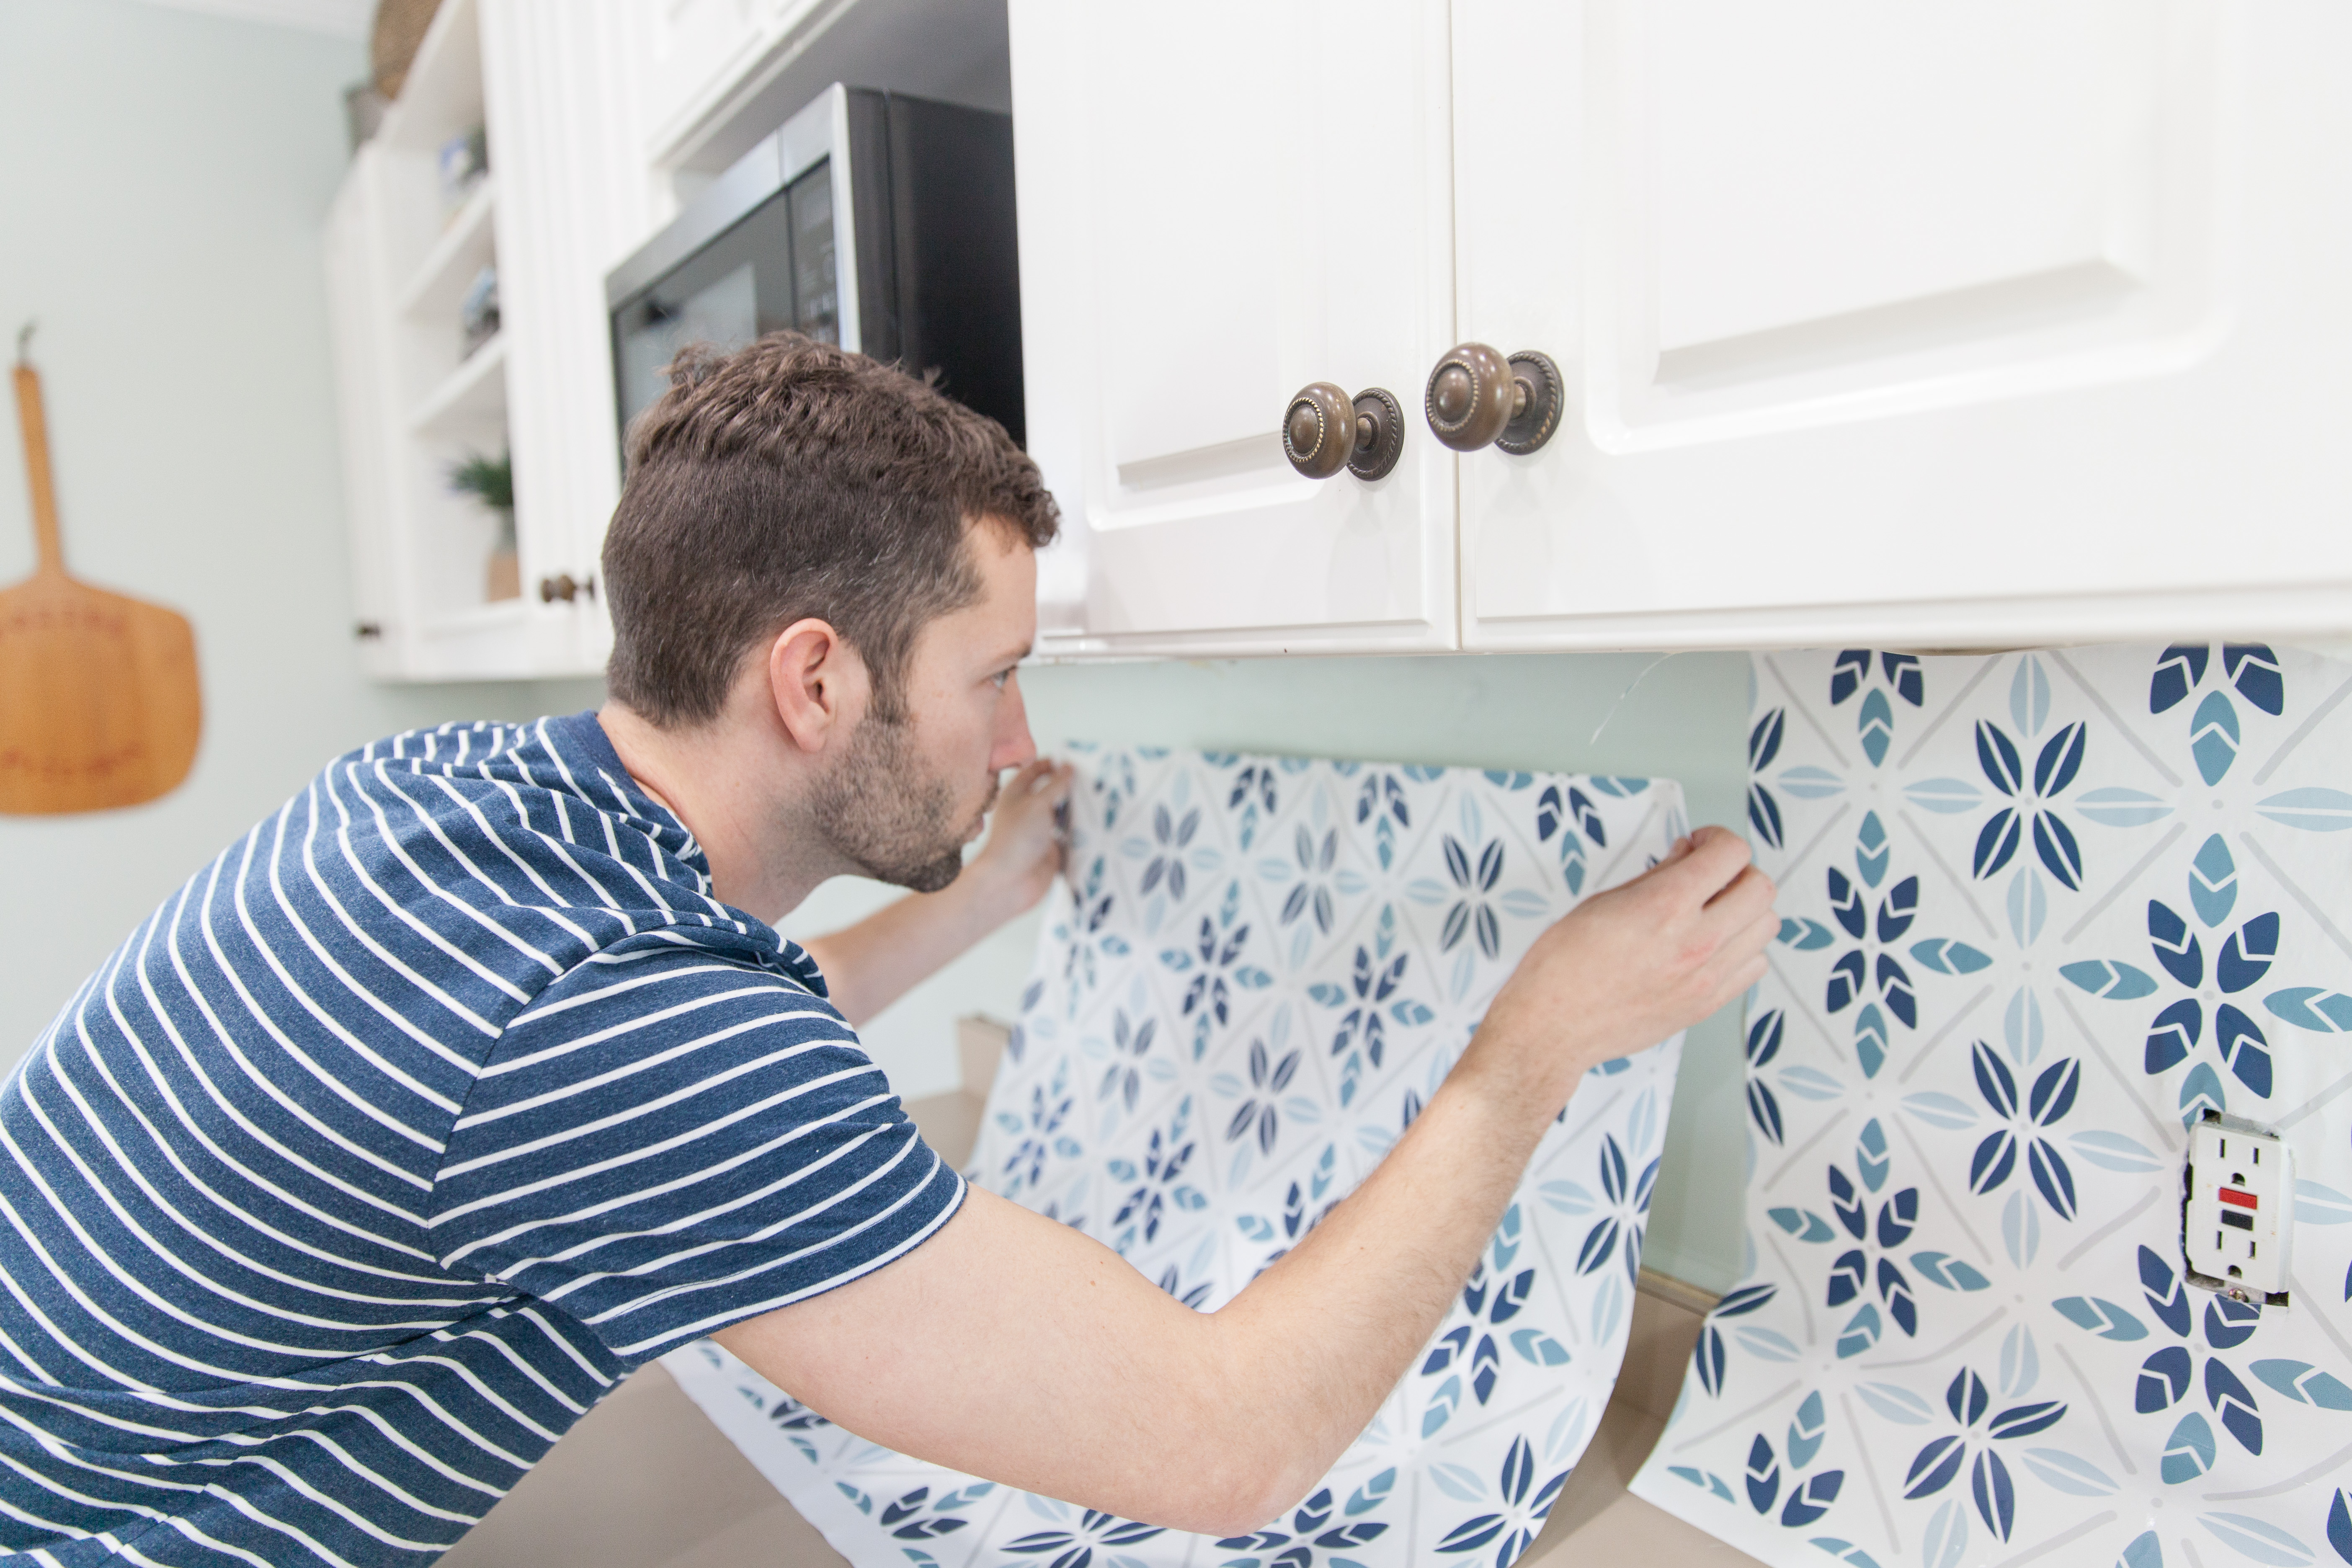 Hanging the wallpaper | DIY Wallpaper Backsplash | Spoonflower Blog